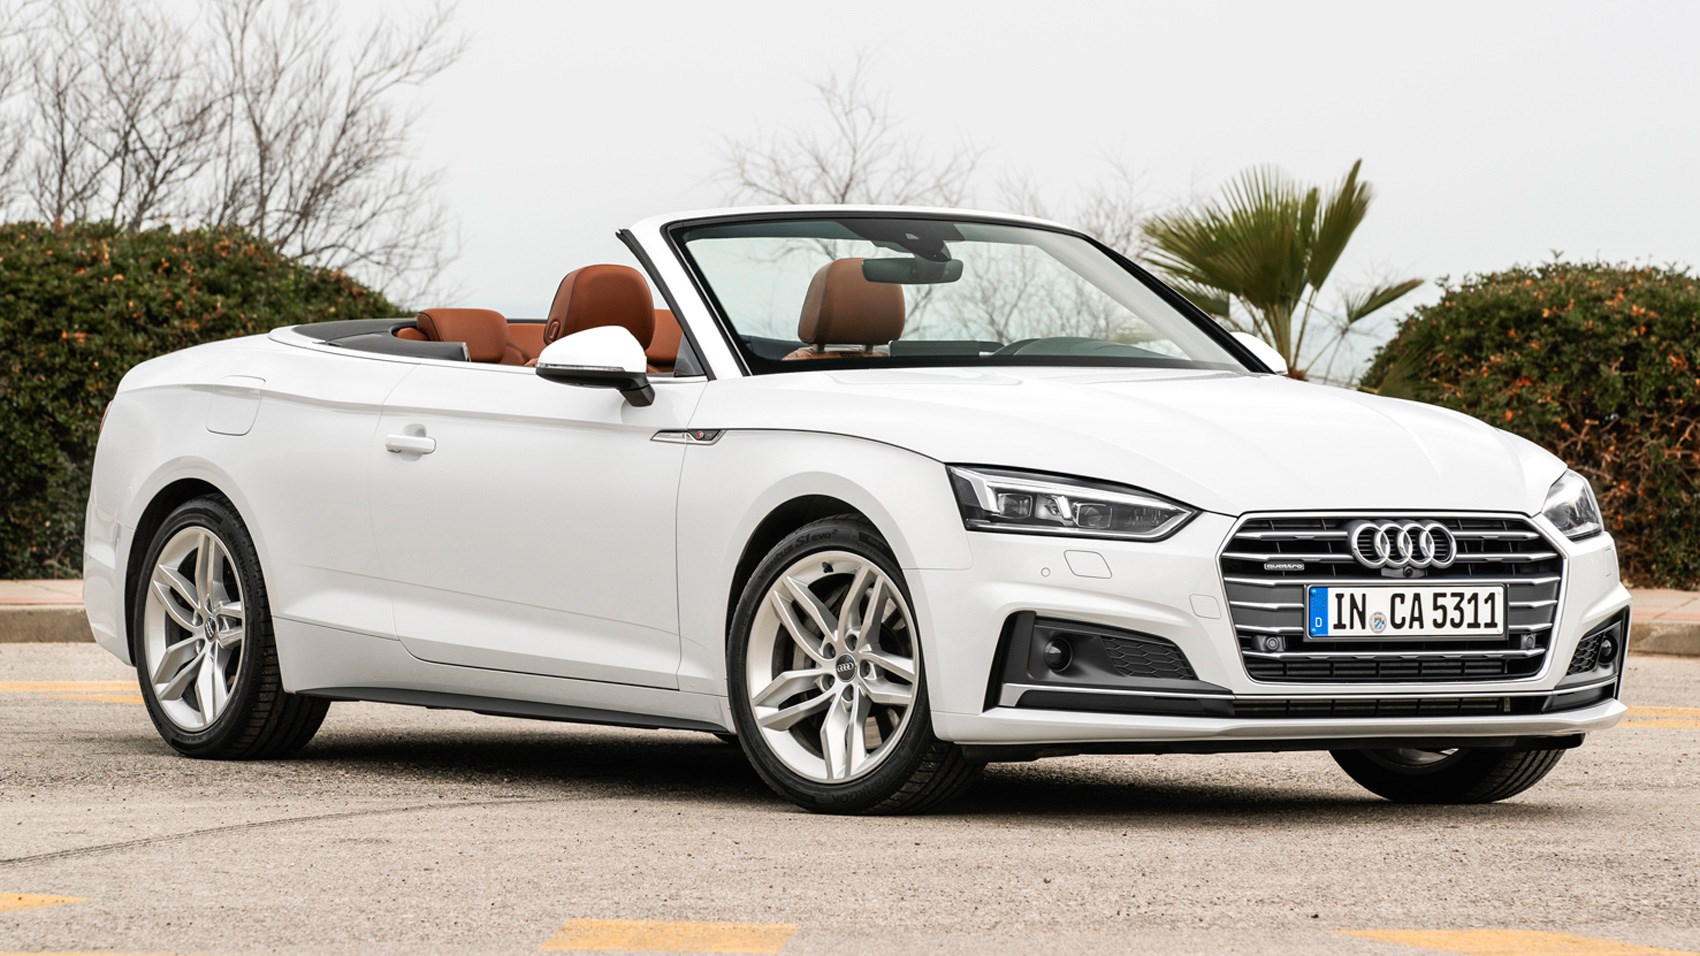 Audi A5 Cabriolet 2017 Sell My Car Buy My Car